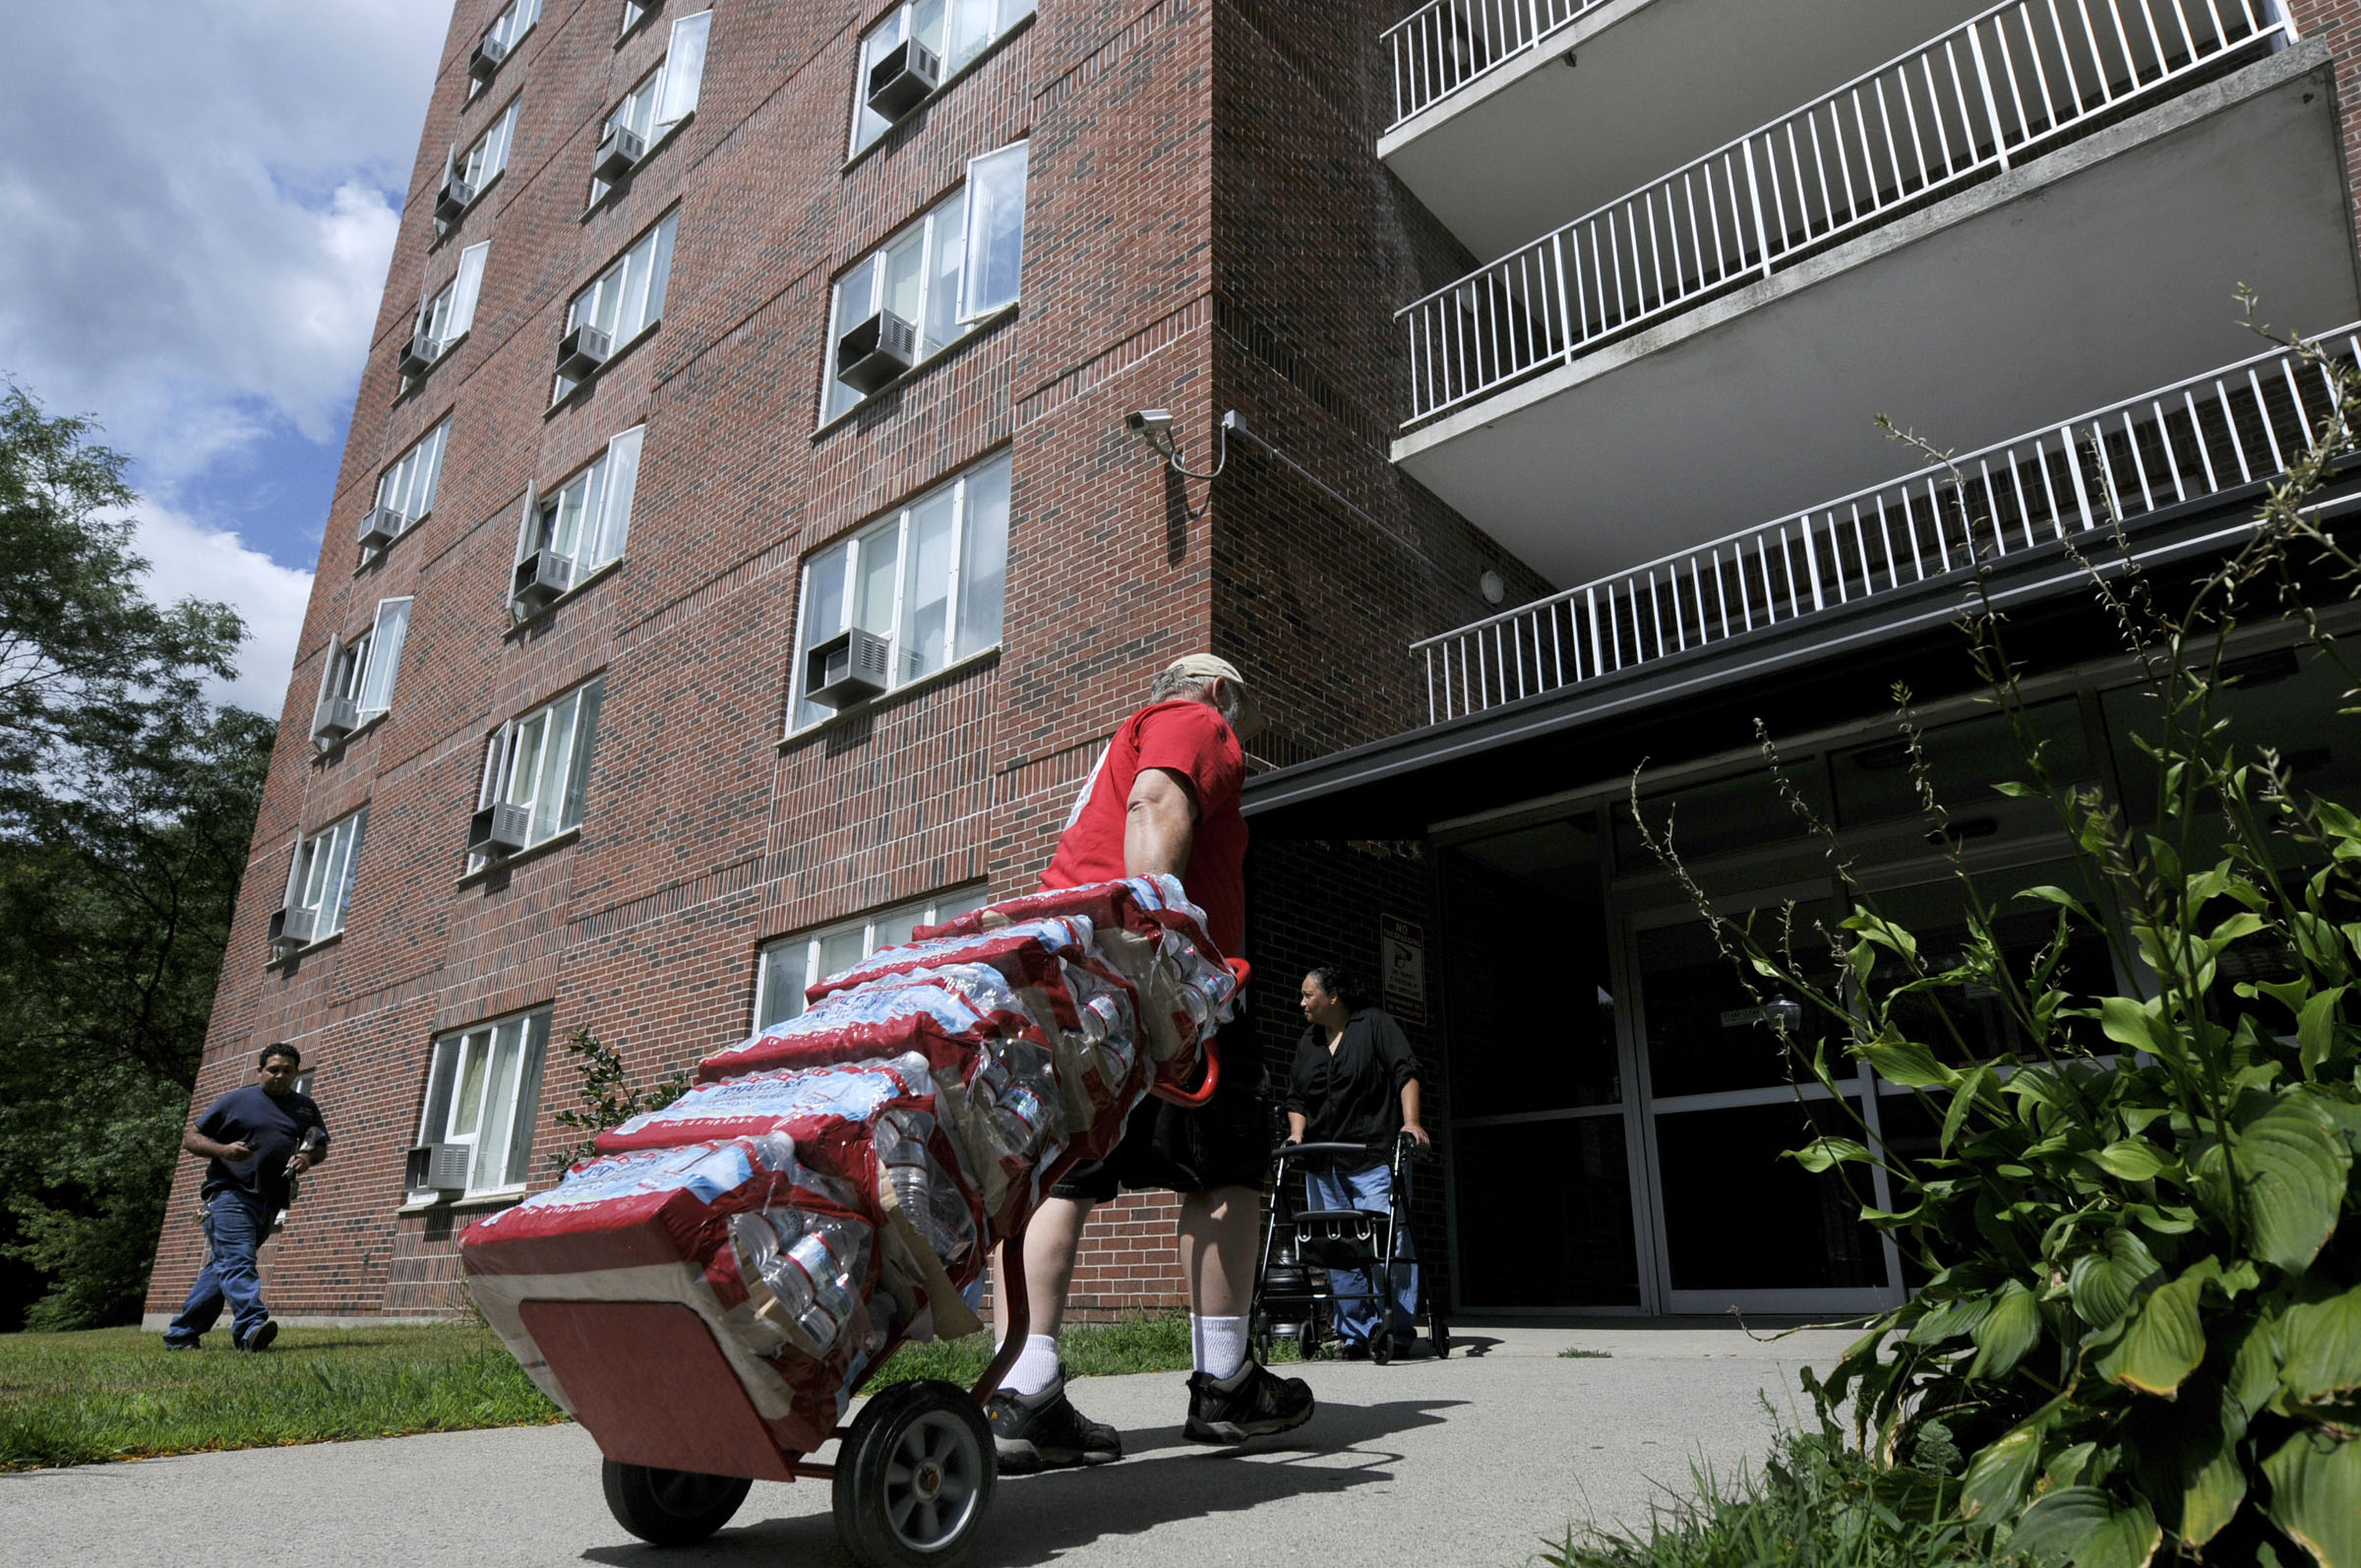 Several cases of bottled water are delivered to the New London Housing authority highrise on Colman Street by staff from the American Red Cross after residents lost water service Thursday. A water main break in New London's Bates Woods Park nearby caused lowered water pressure for some and interrupted service for others.